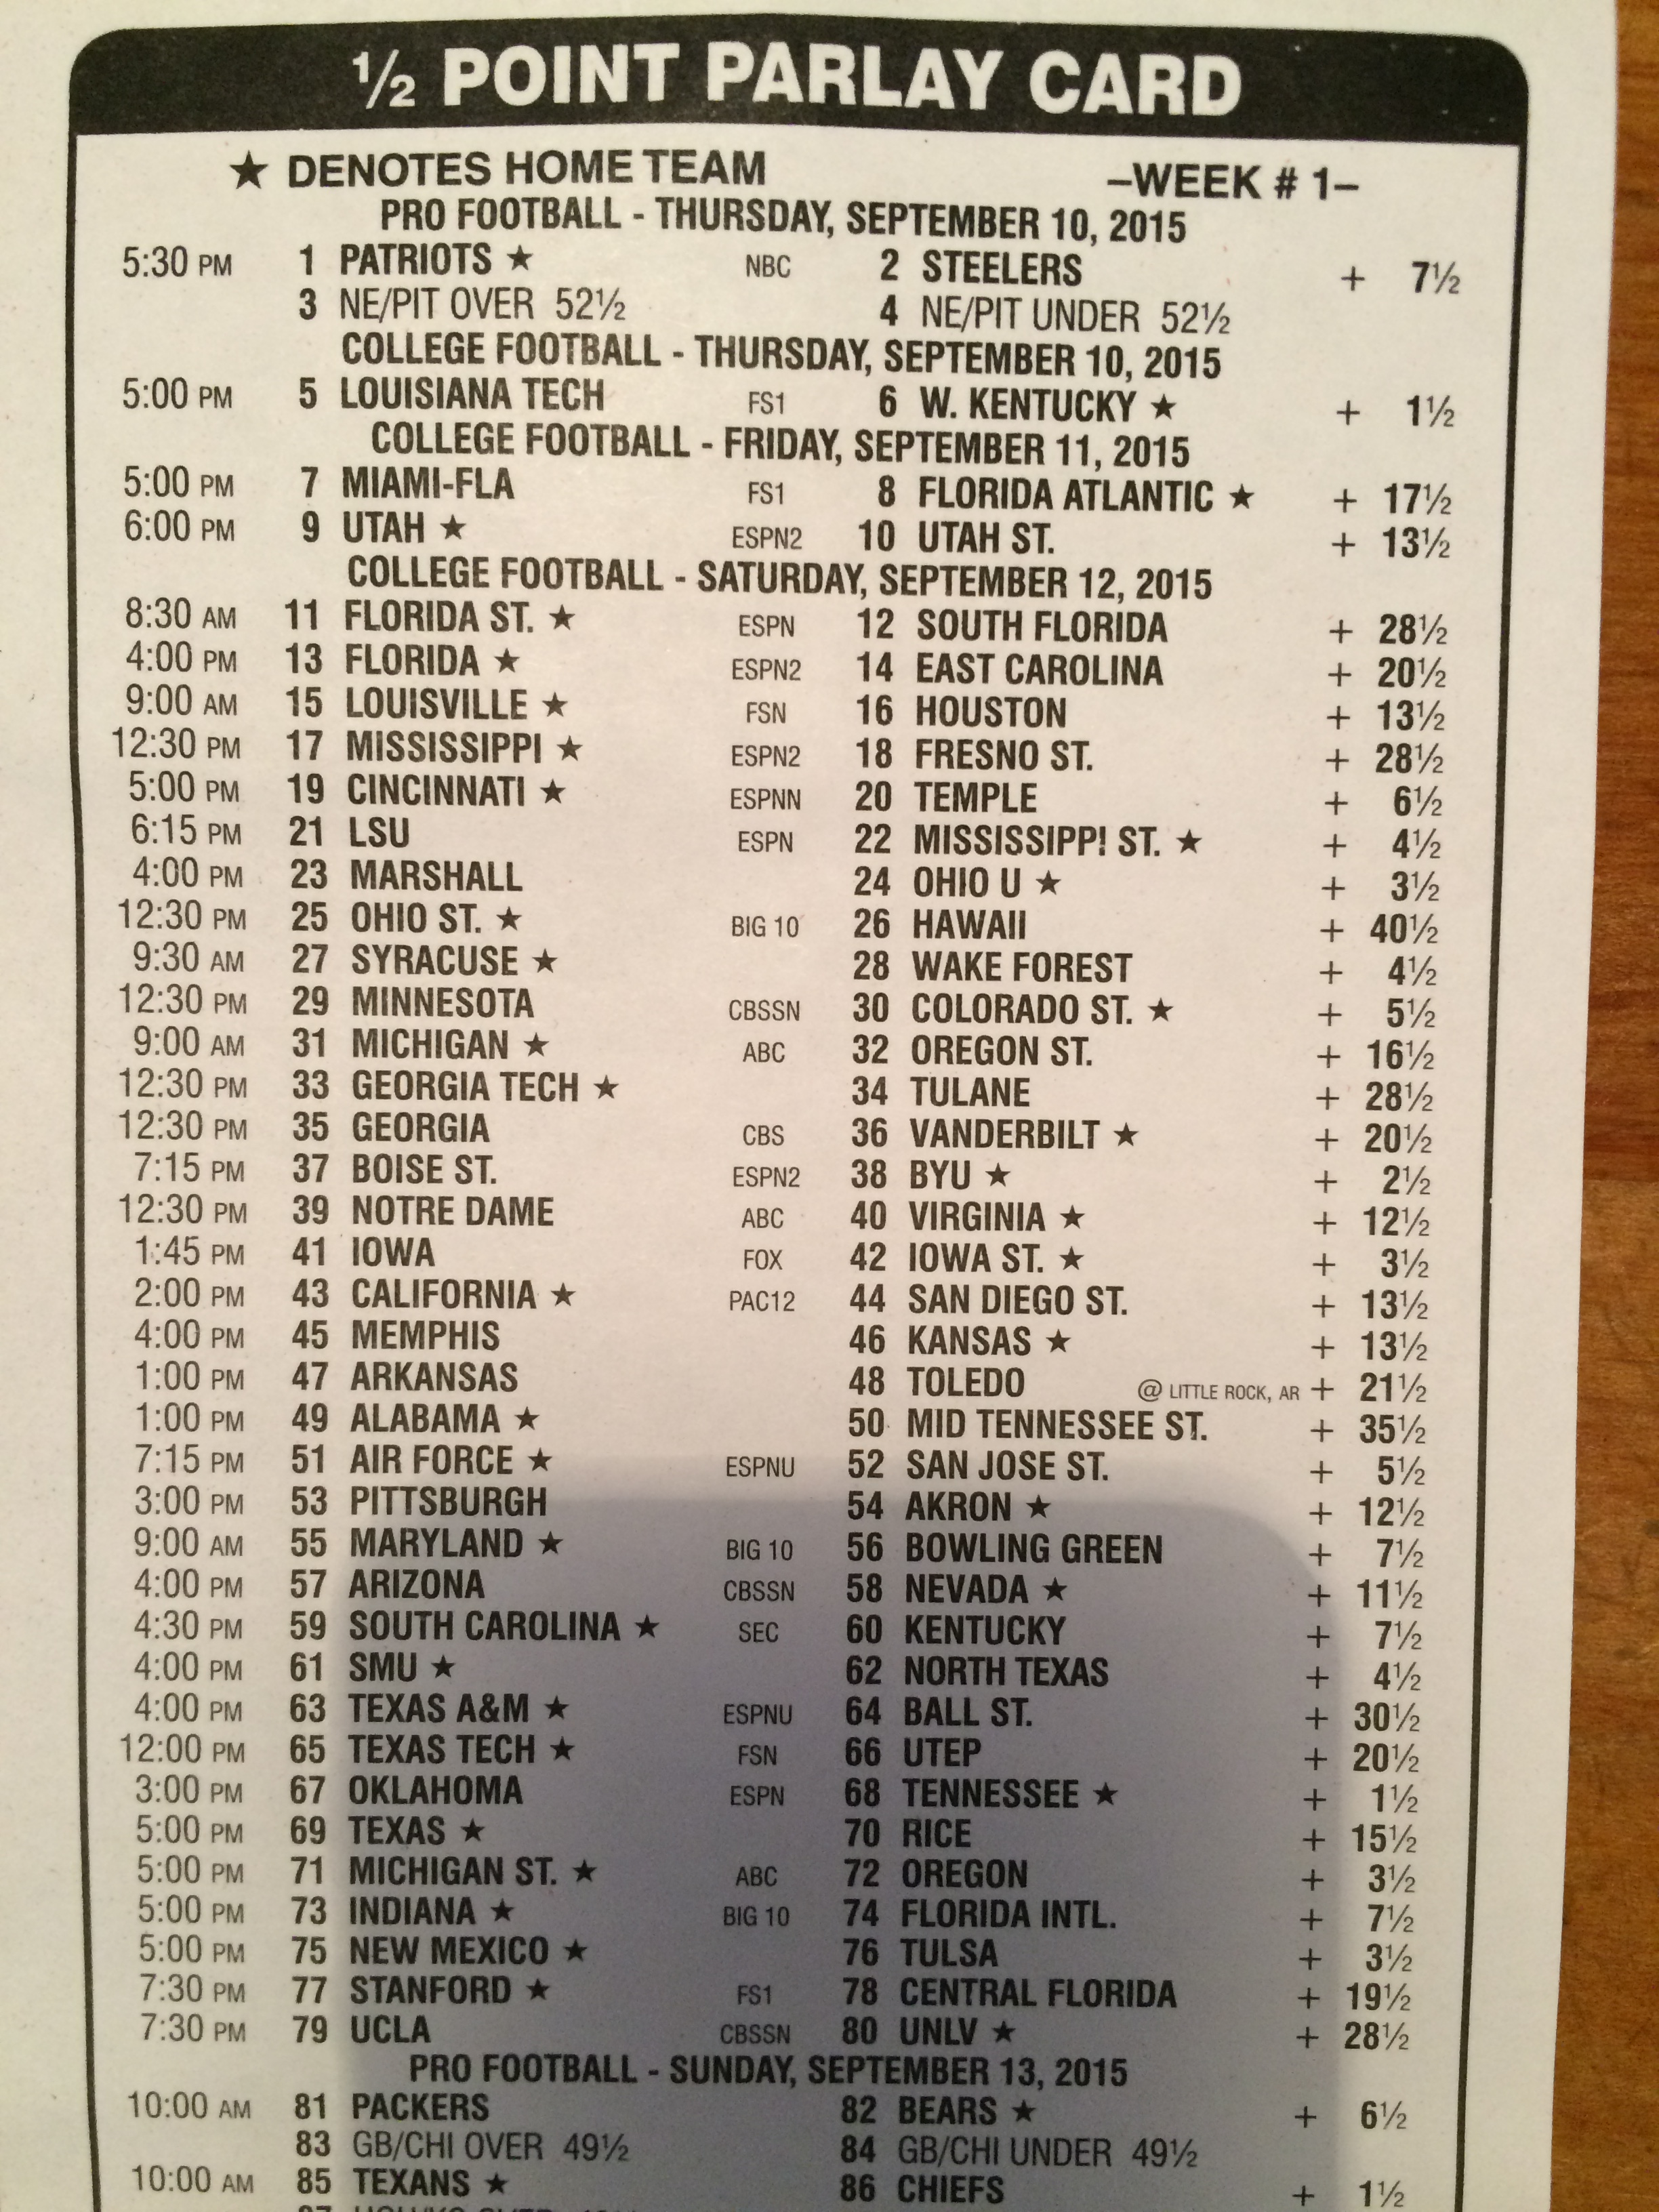 odds for 15 game parlay payout table